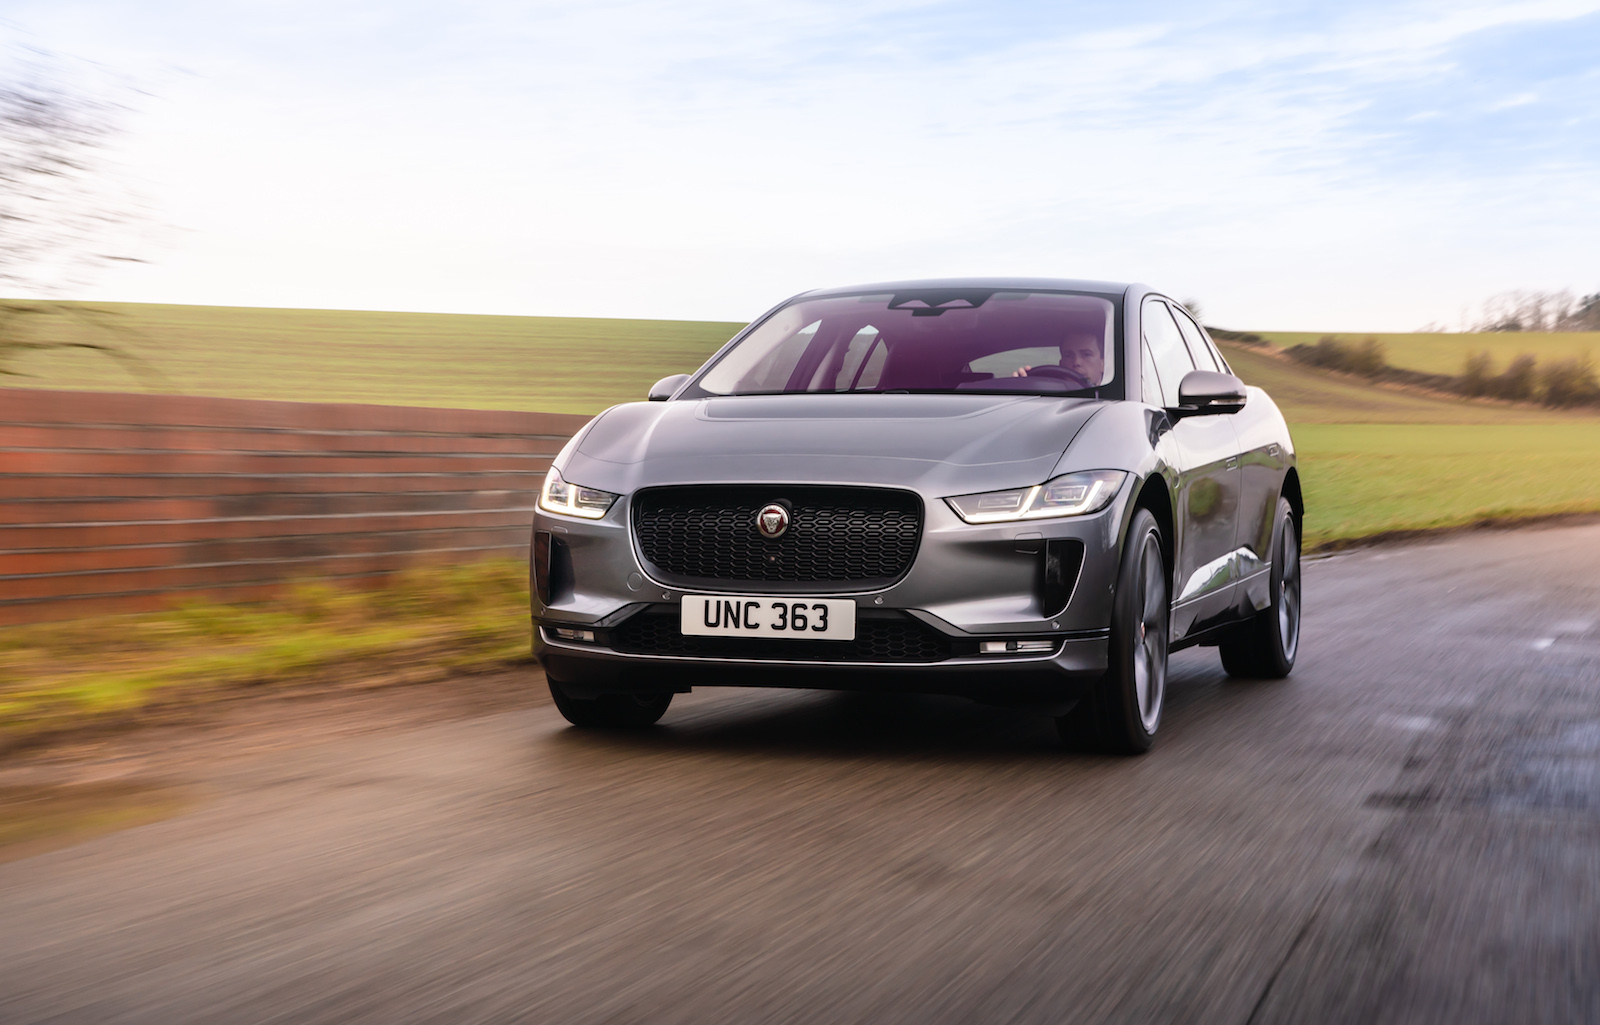 Automotive Innovation - The Jaguar I-Pace is a fully electric model, which utilizes aluminum sheet from Novelis in its body and battery structures.